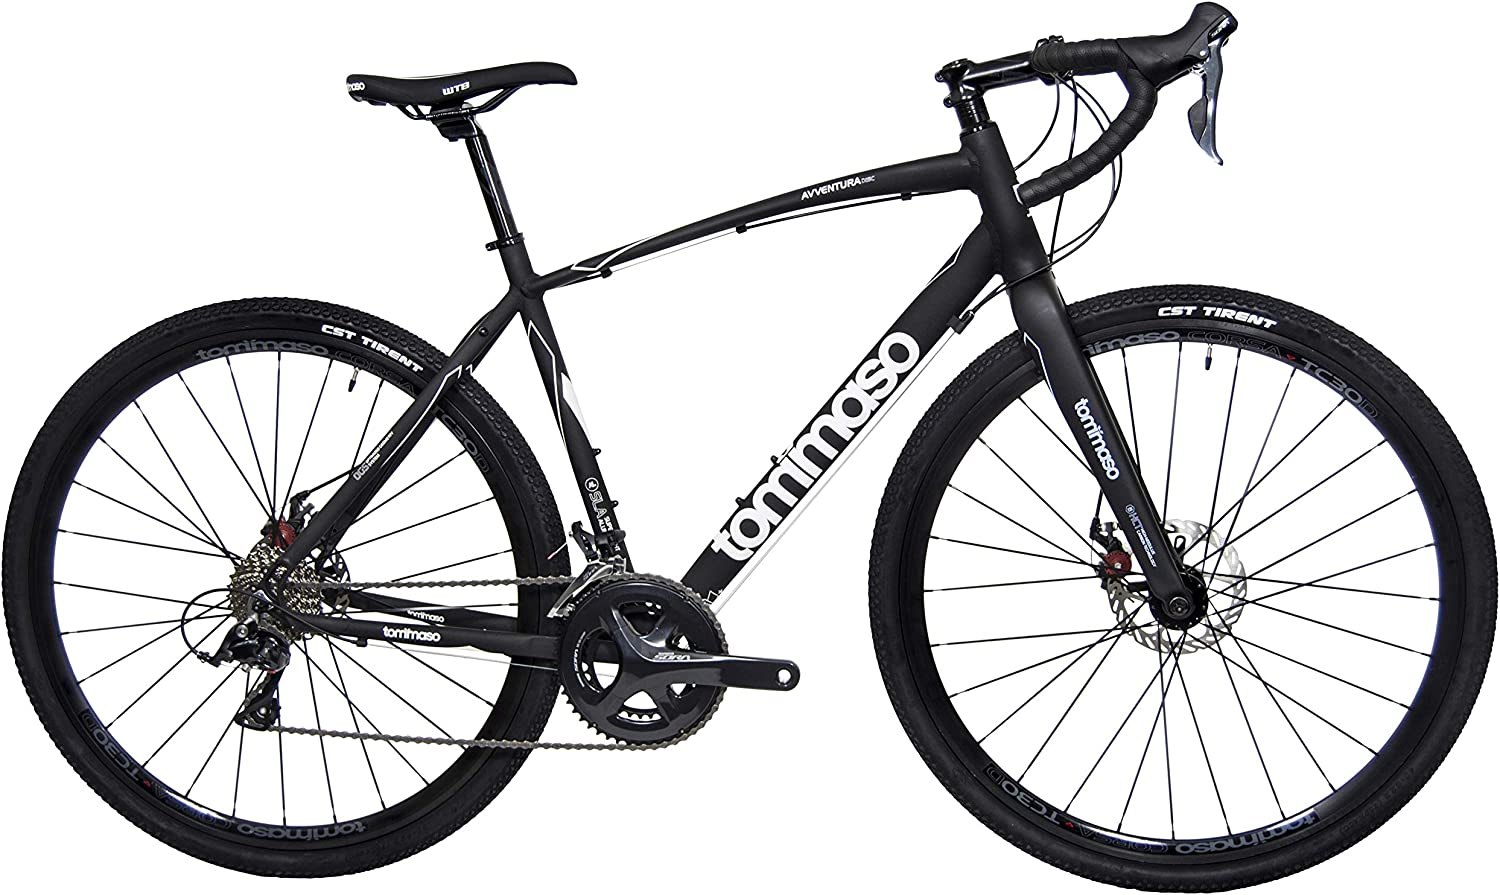 Tommaso Avventura Shimano Sora Gravel Adventure Bike with Disc Brakes, Extra Wide Tires, and Carbon Fork Perfect for Road Or Dirt Trail Touring, Matte Black